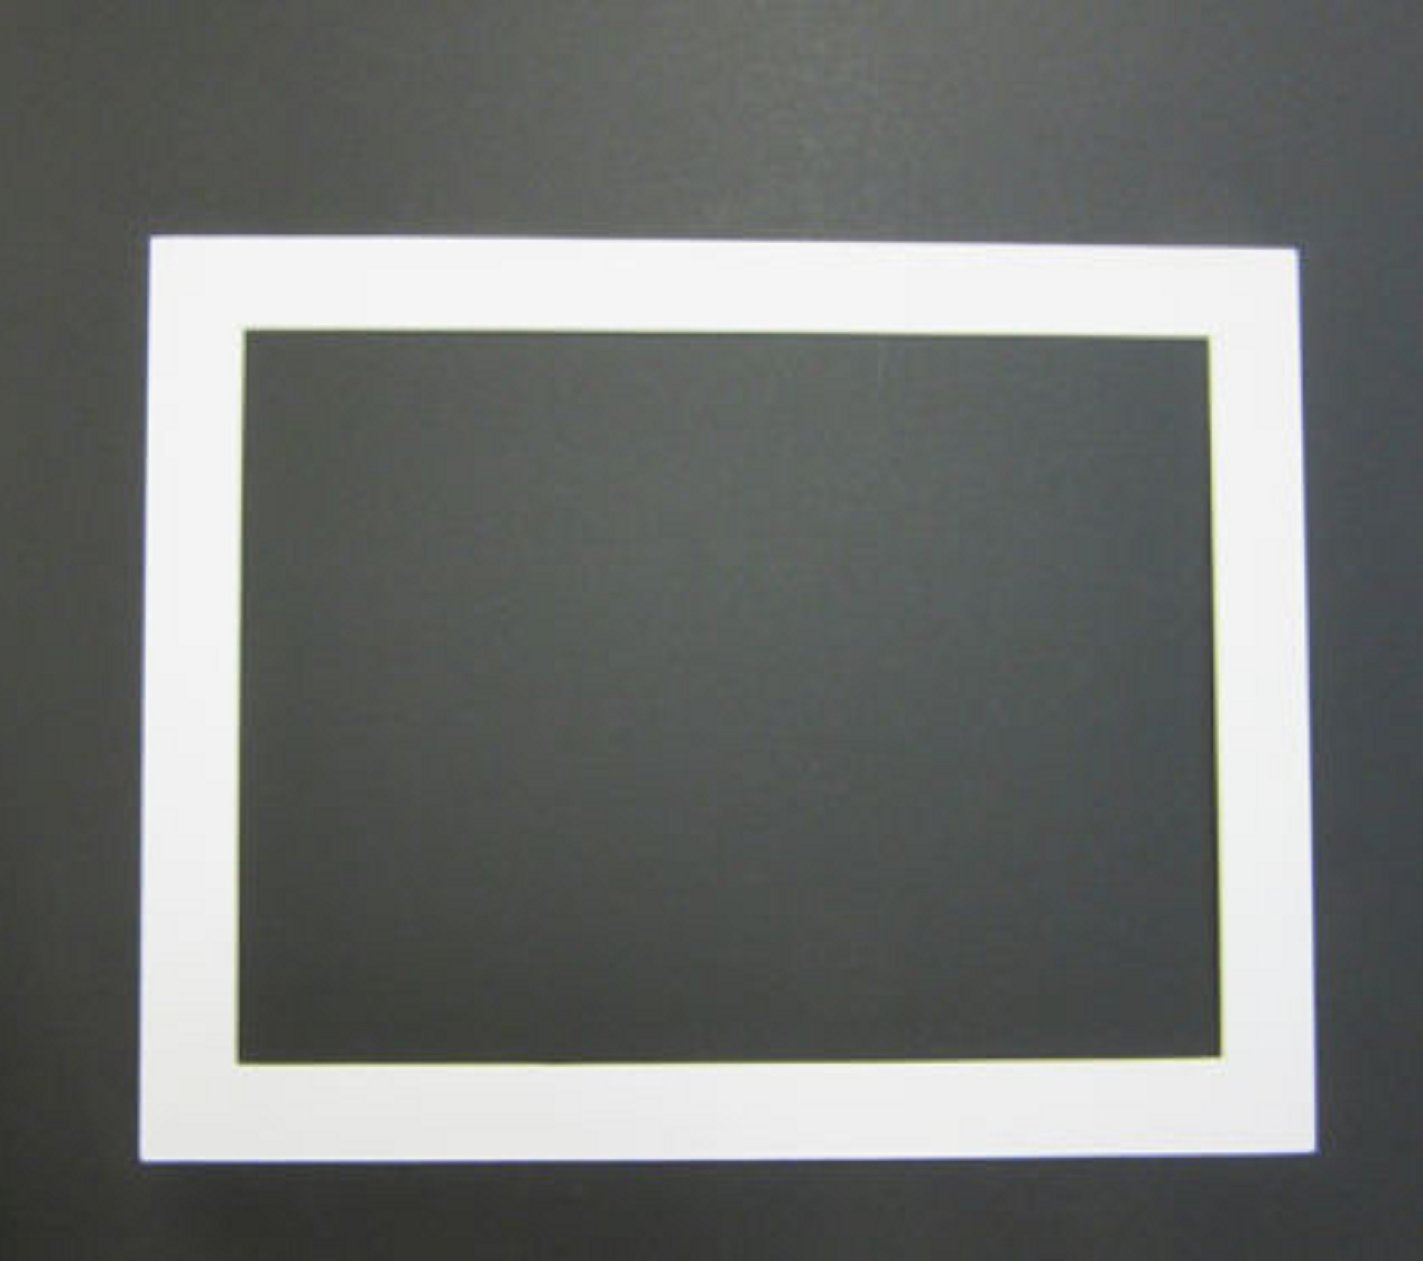 USA Premium Store Picture Framing Mats 11x14 for 9x12 photo White with white core set of 24